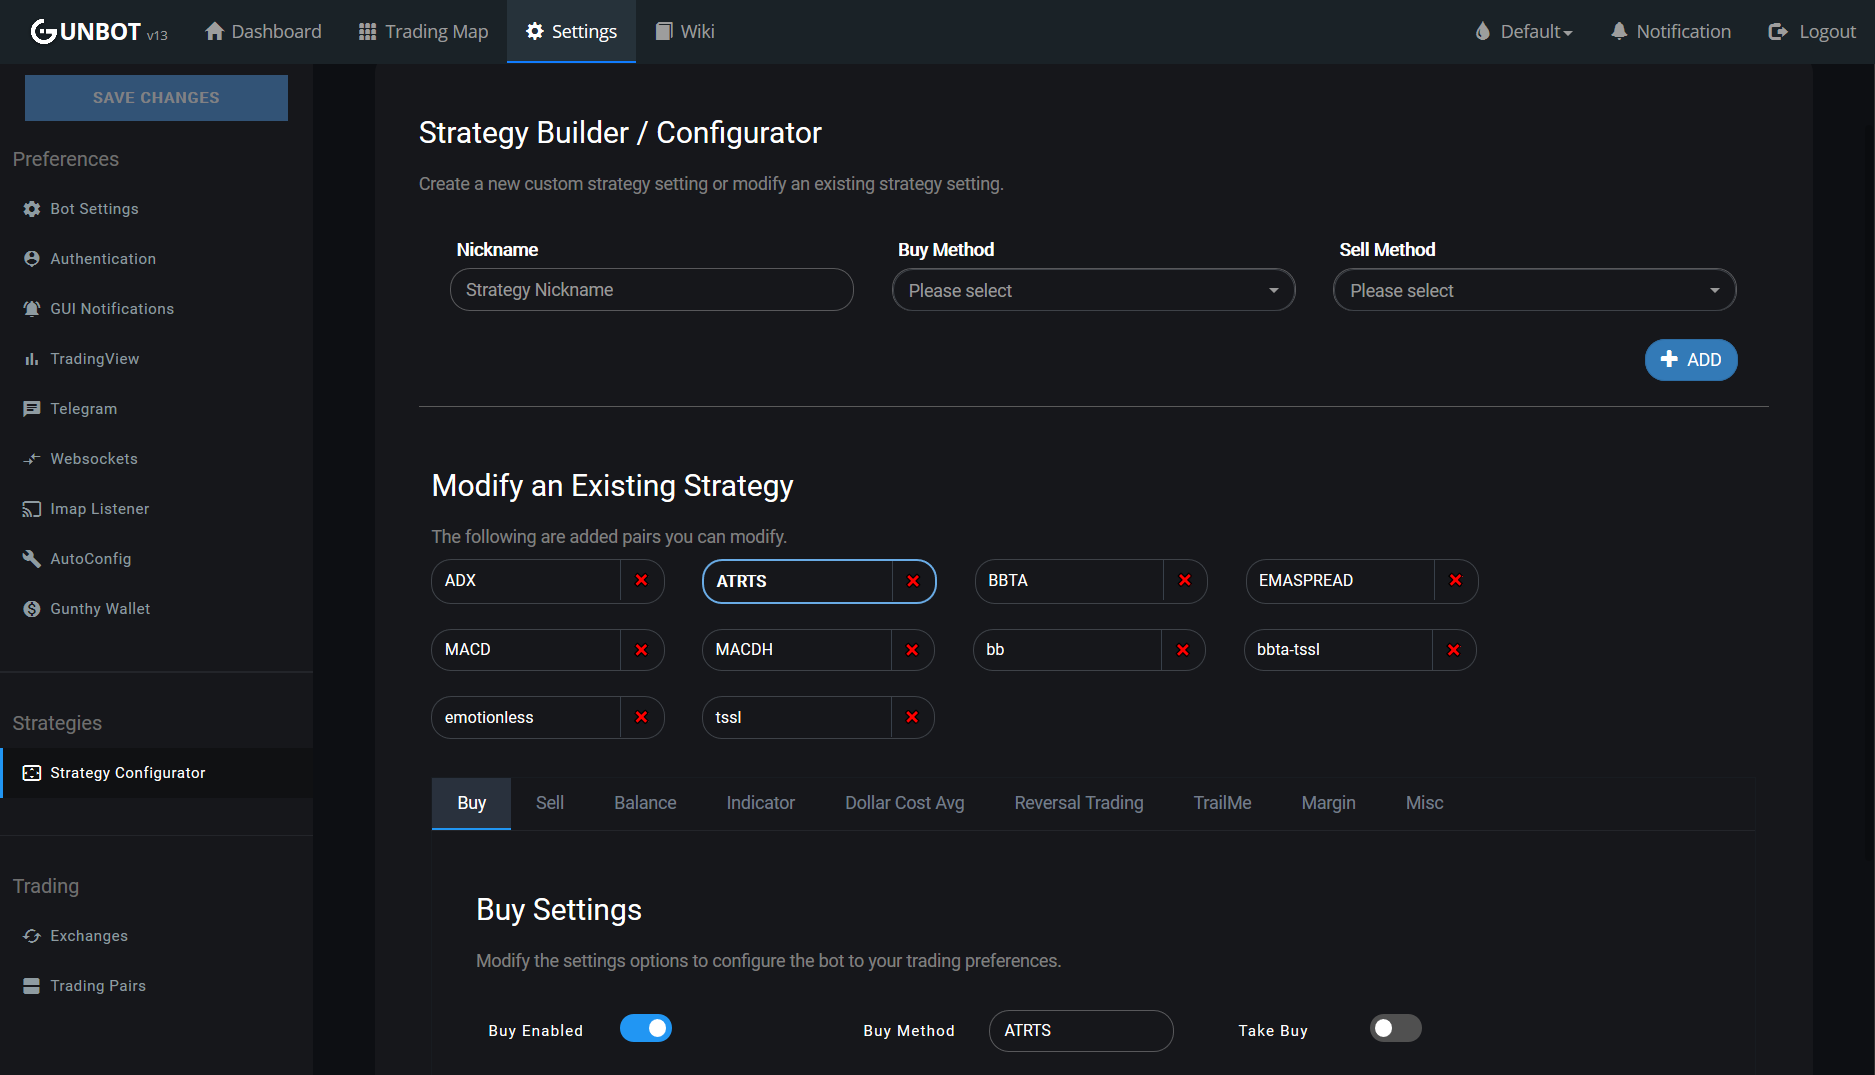 Gunbot strategy configurator for day trading